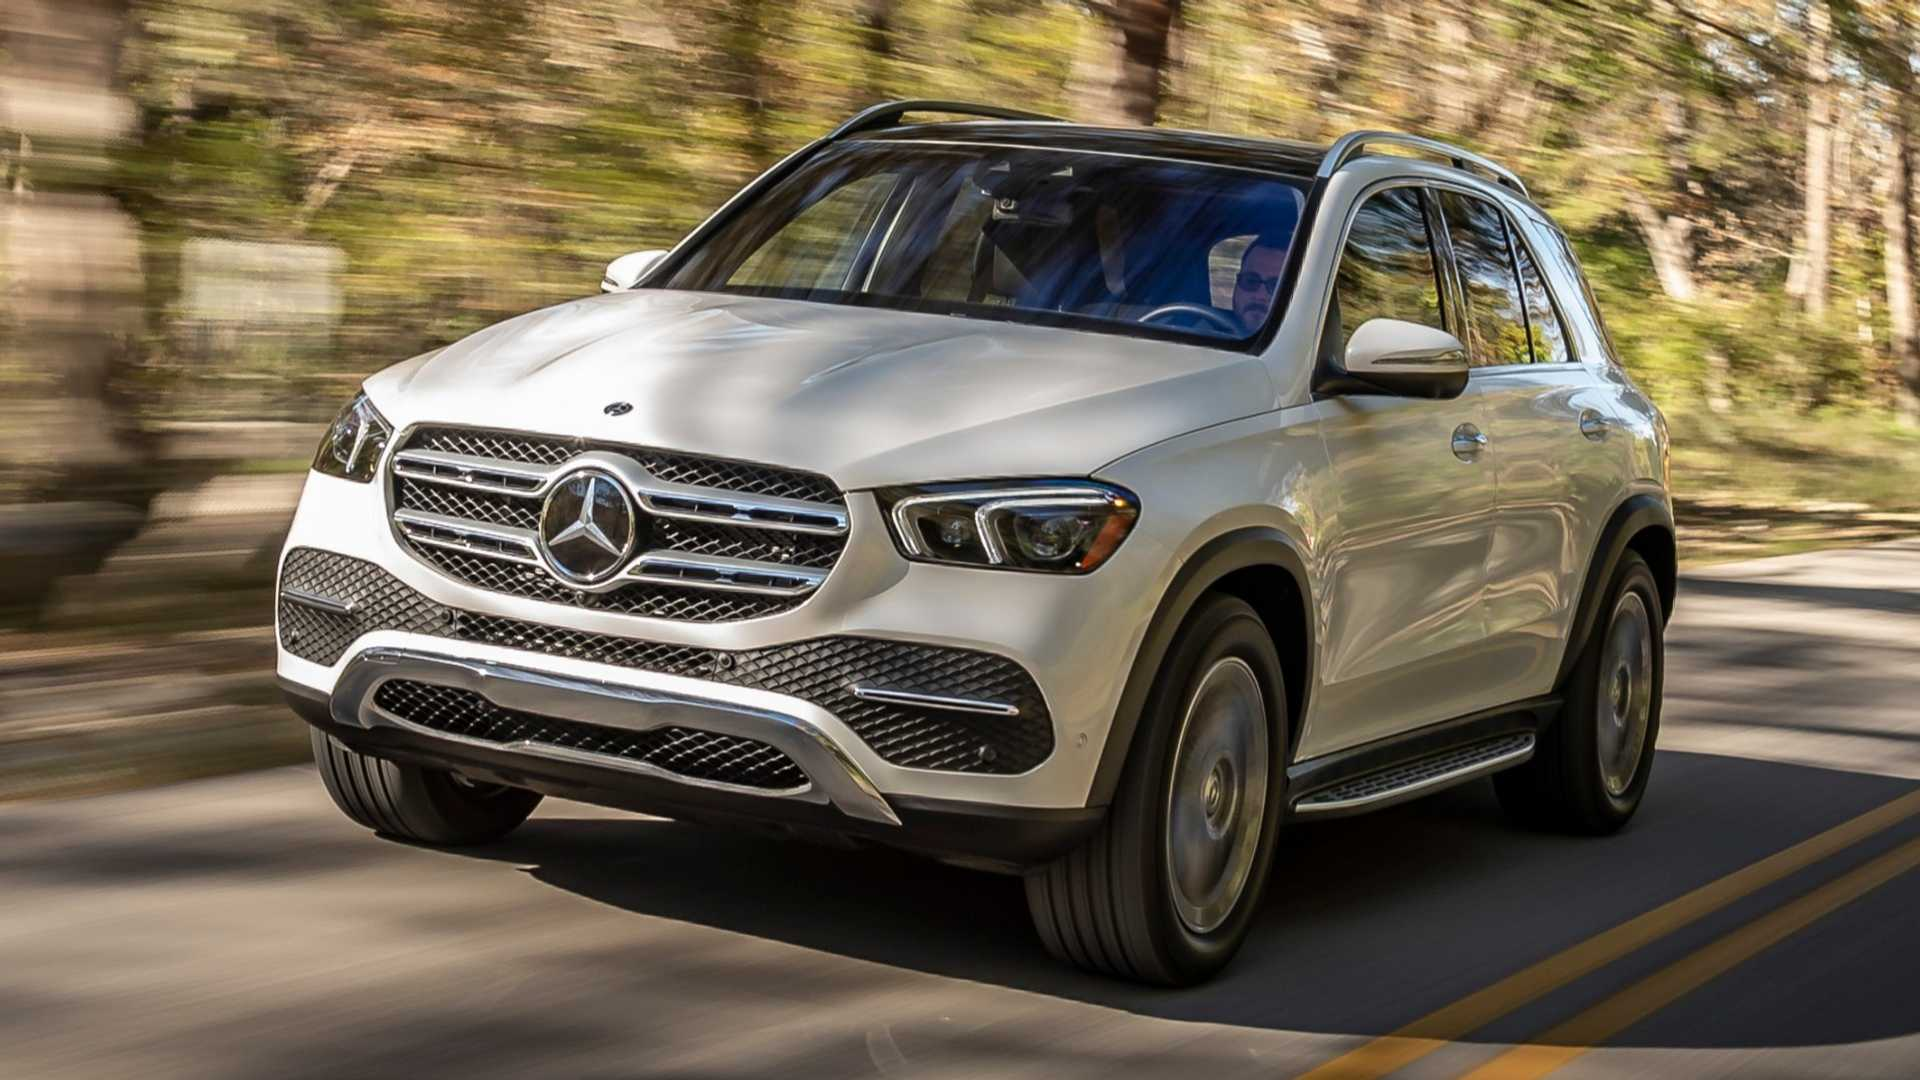 Mercedes Benz Might Introduce Gle 580 Suv With Detuned Amg V8